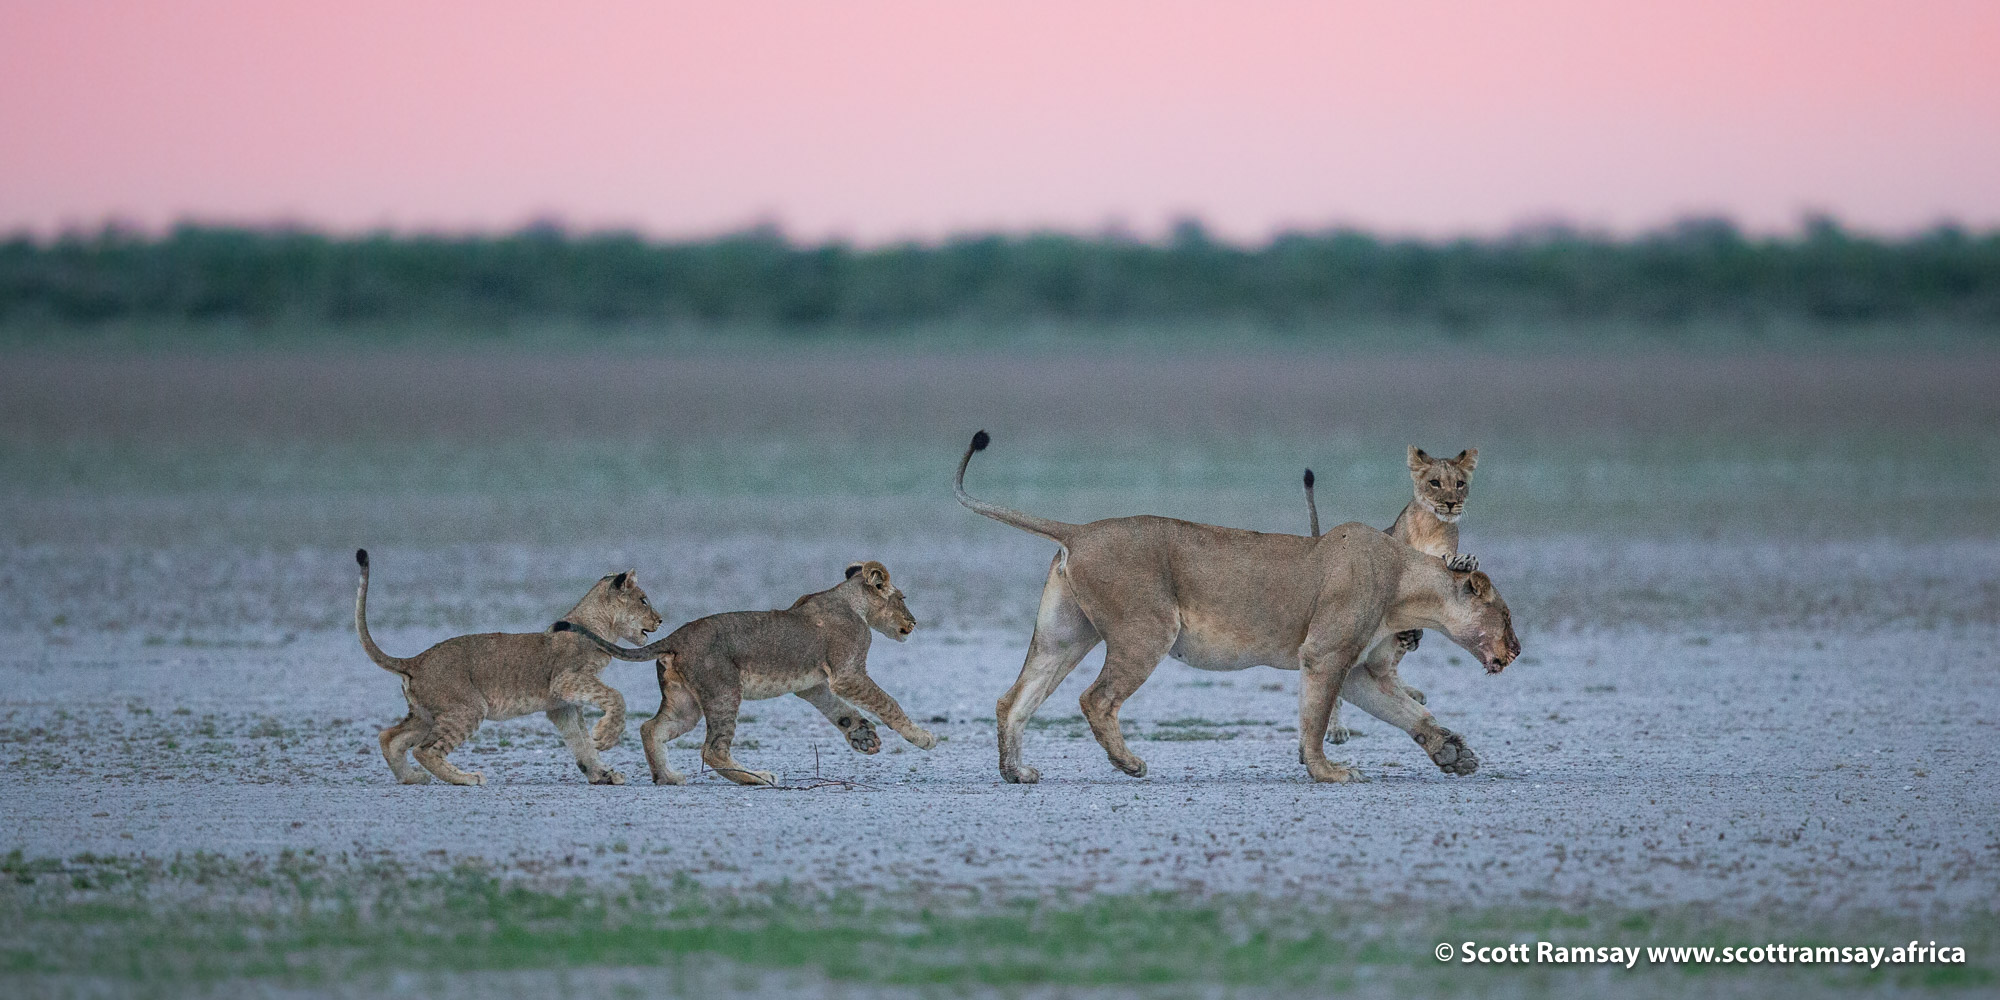 We found the lioness, with cubs, a few kilometres away...perhaps she had been trying to keep the male away from the cubs?